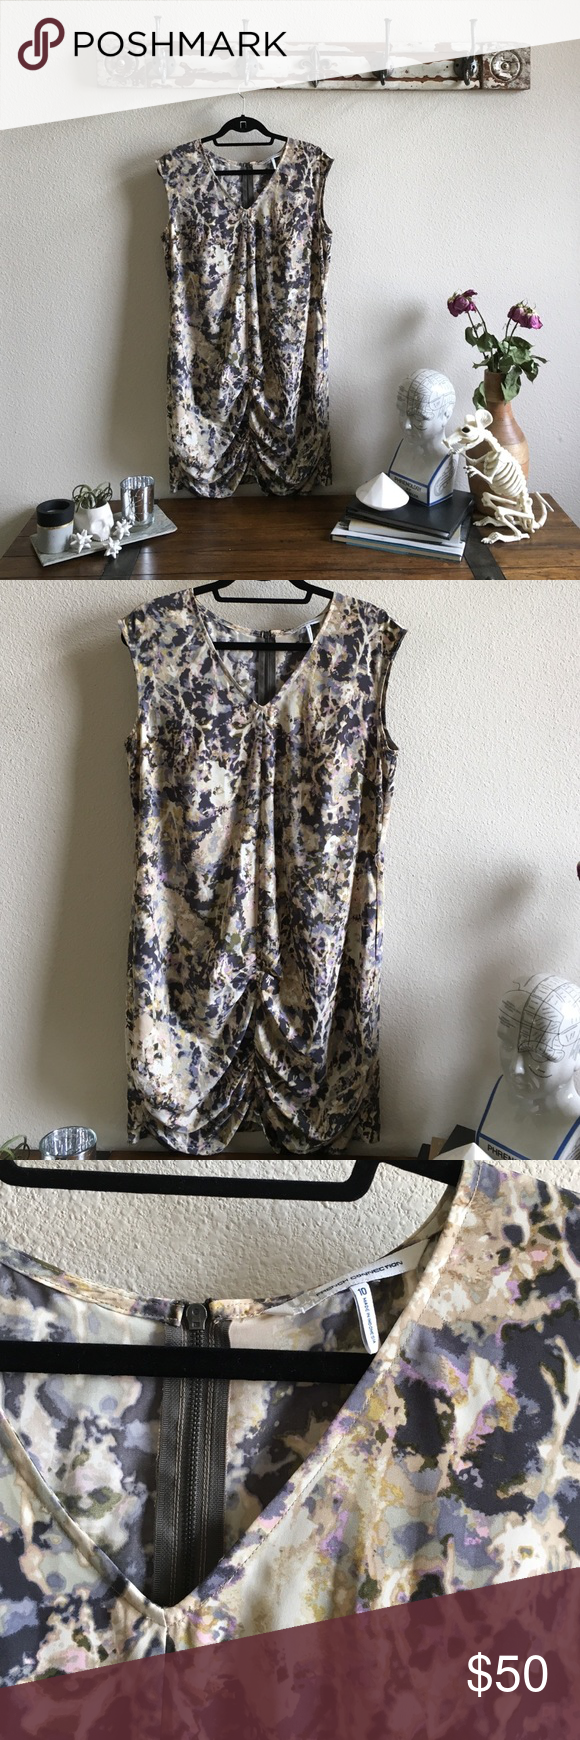 French Connection Zip Back Dress In like new condition. French Connection Dresses